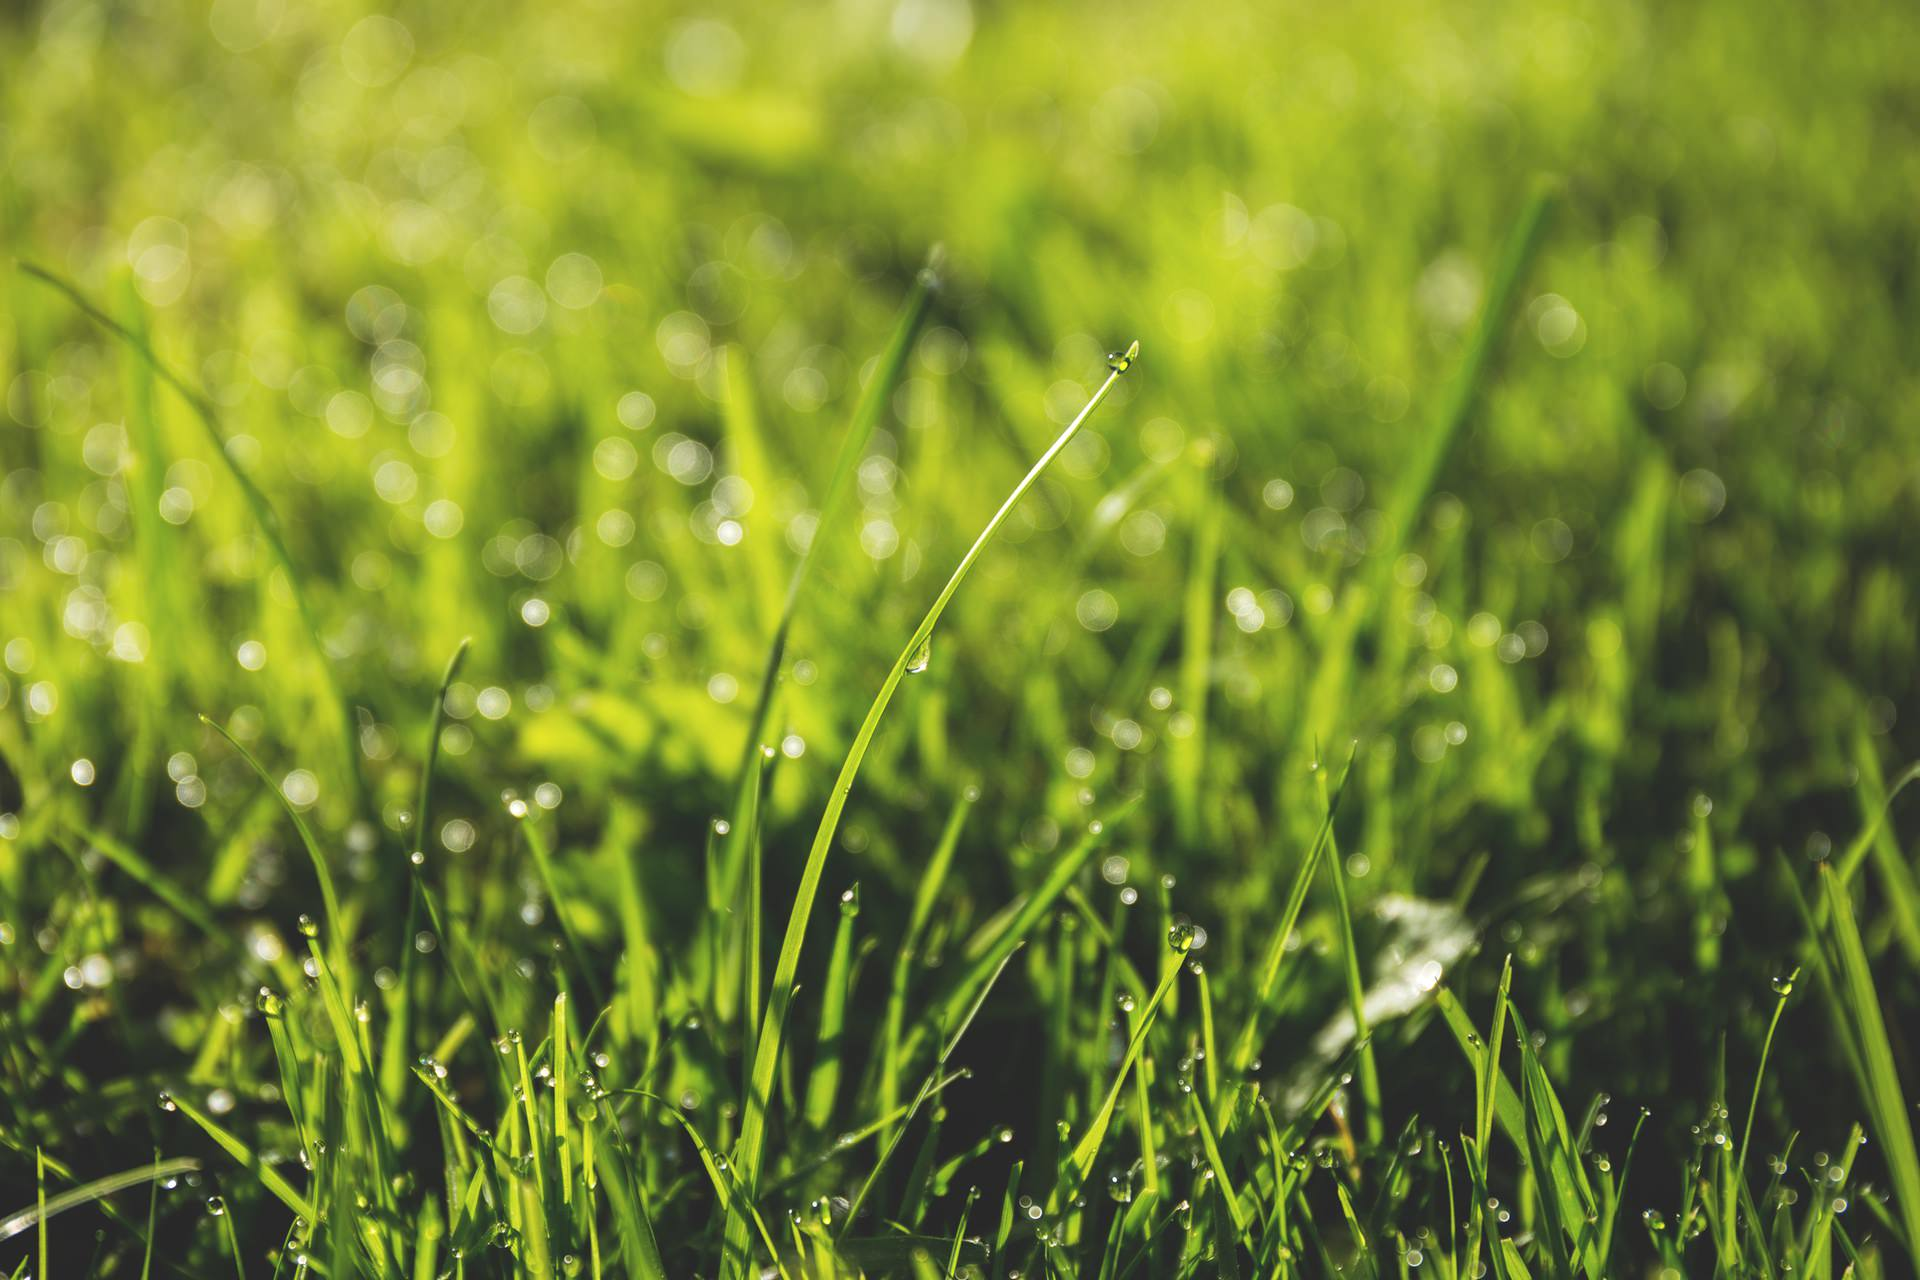 ​Taking Care of Your Lawn Without Wasting Resources